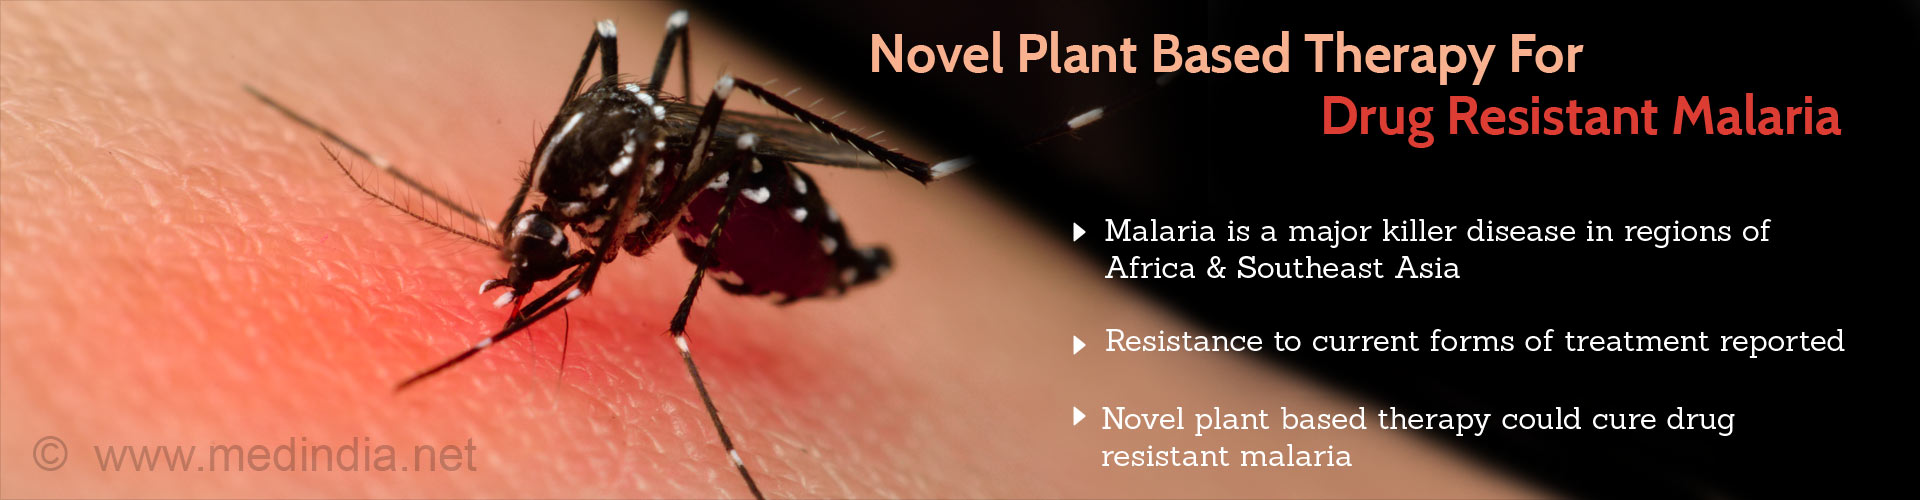 Breakthrough Plant-Based Therapy Could Save Patients With Drug-Resistant Malaria